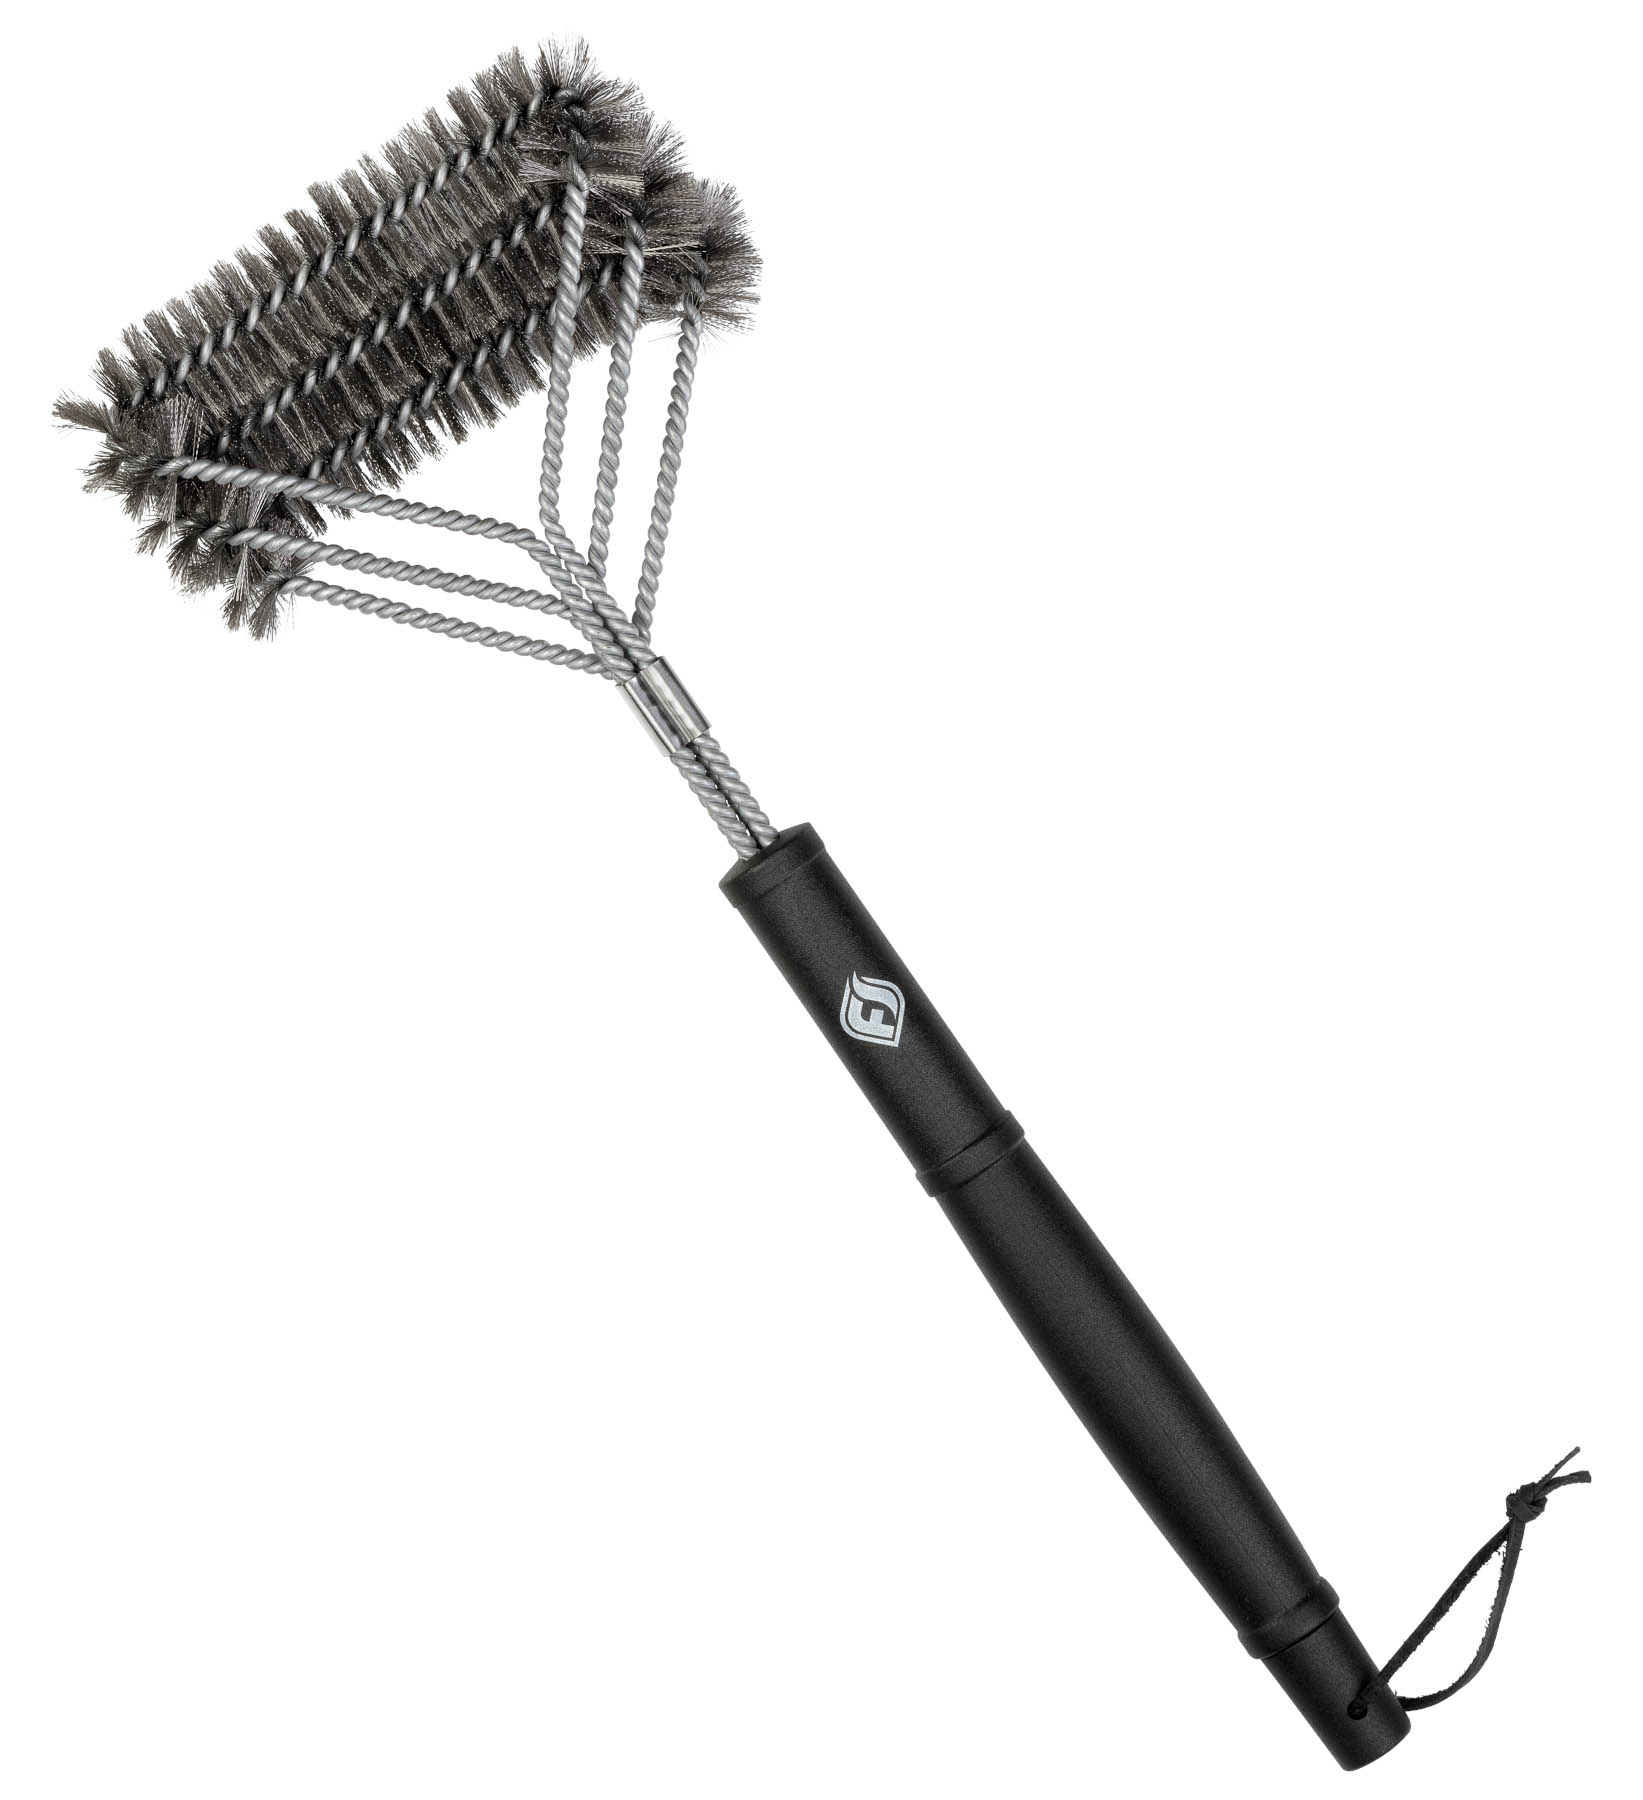 BBQ Brush full front-on photo - Main product photo for Amazon site